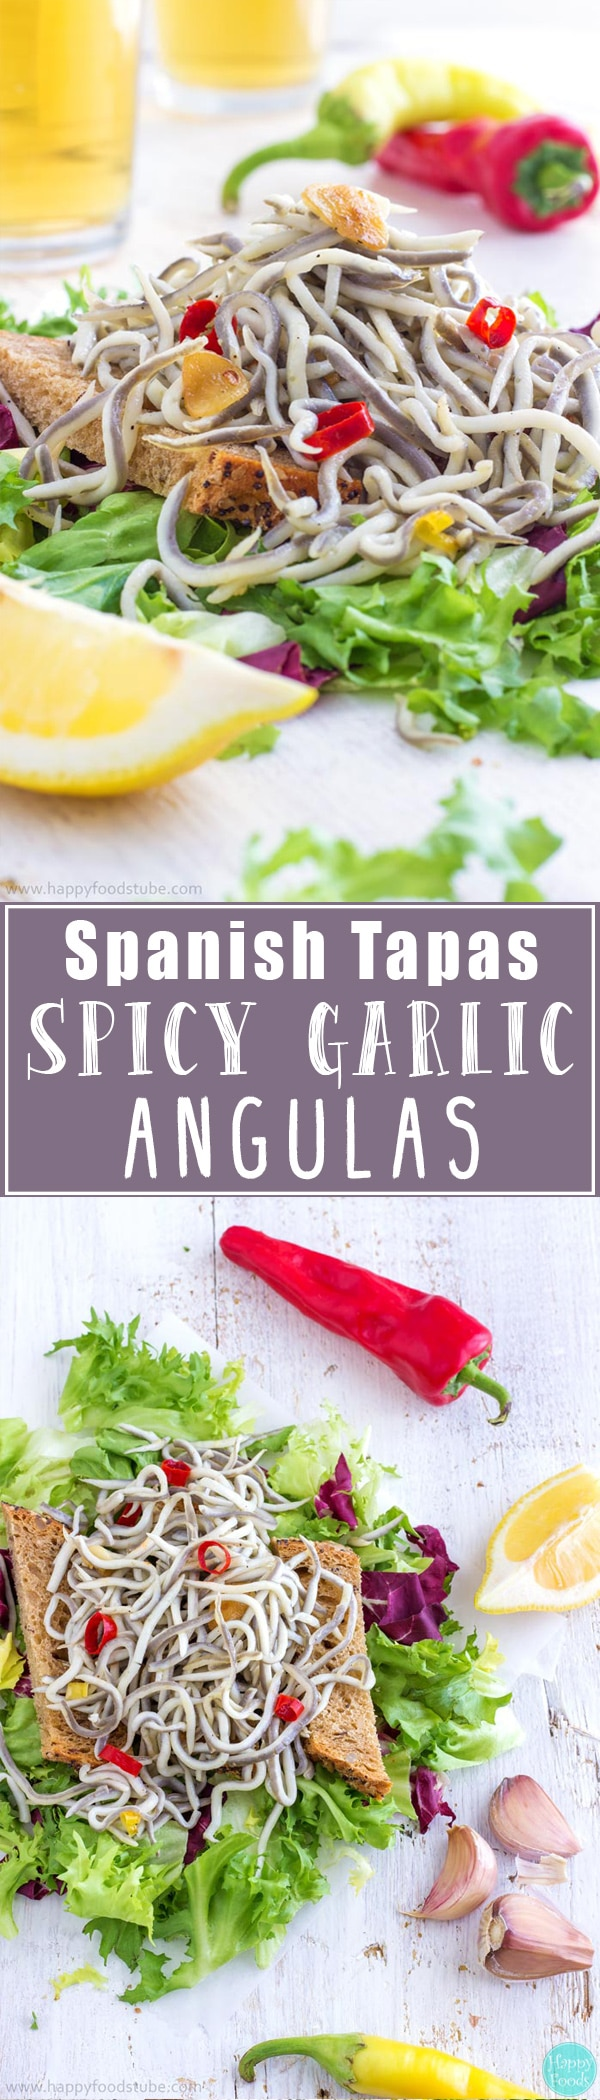 These Spicy Garlic Angulas/Gulas make a great appetizer or a snack. Angulas are a traditional Basque dish but nowadays they can be enjoyed as tapas all over Spain